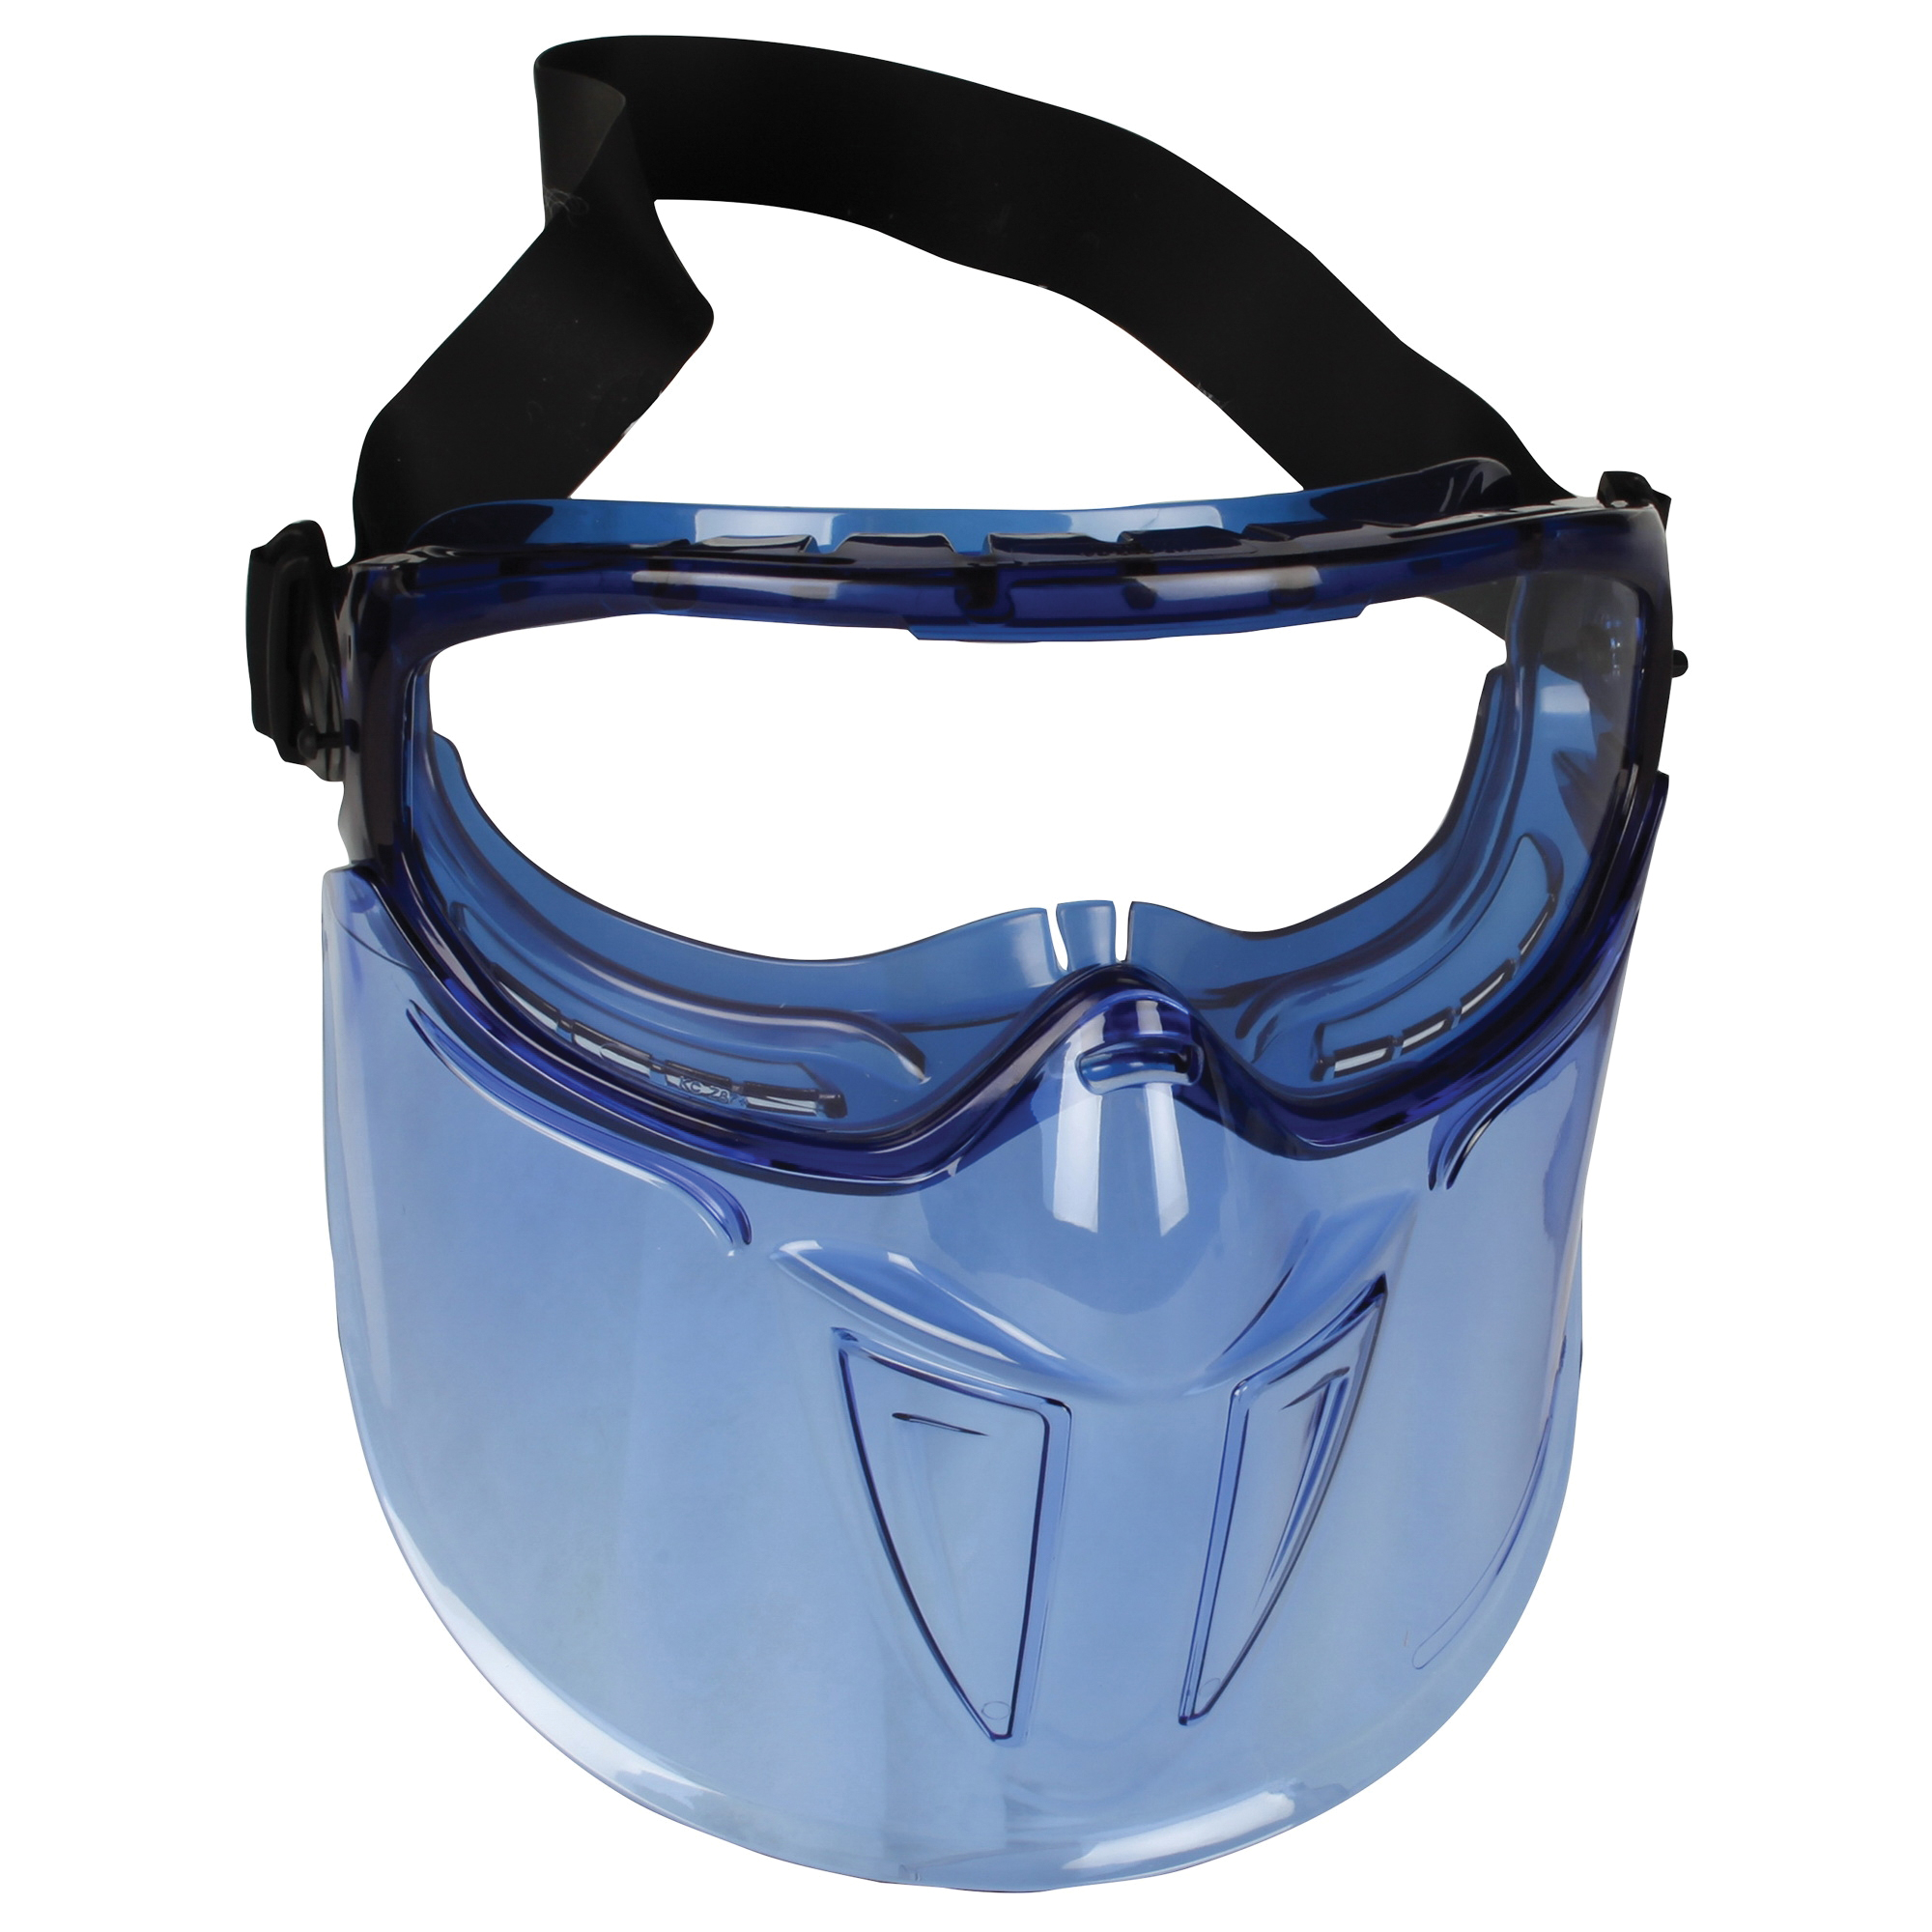 3M™ Modul-R™ 078371-62097 40658-00000-10 Lightweight Value Safety Goggles, Anti-Fog/Impact Resistant/UV-Protective Clear Polycarbonate Lens, 99.9% % UV Protection, Neoprene Strap, CSA Z94.3-2007, ANSI Z87.1-2003